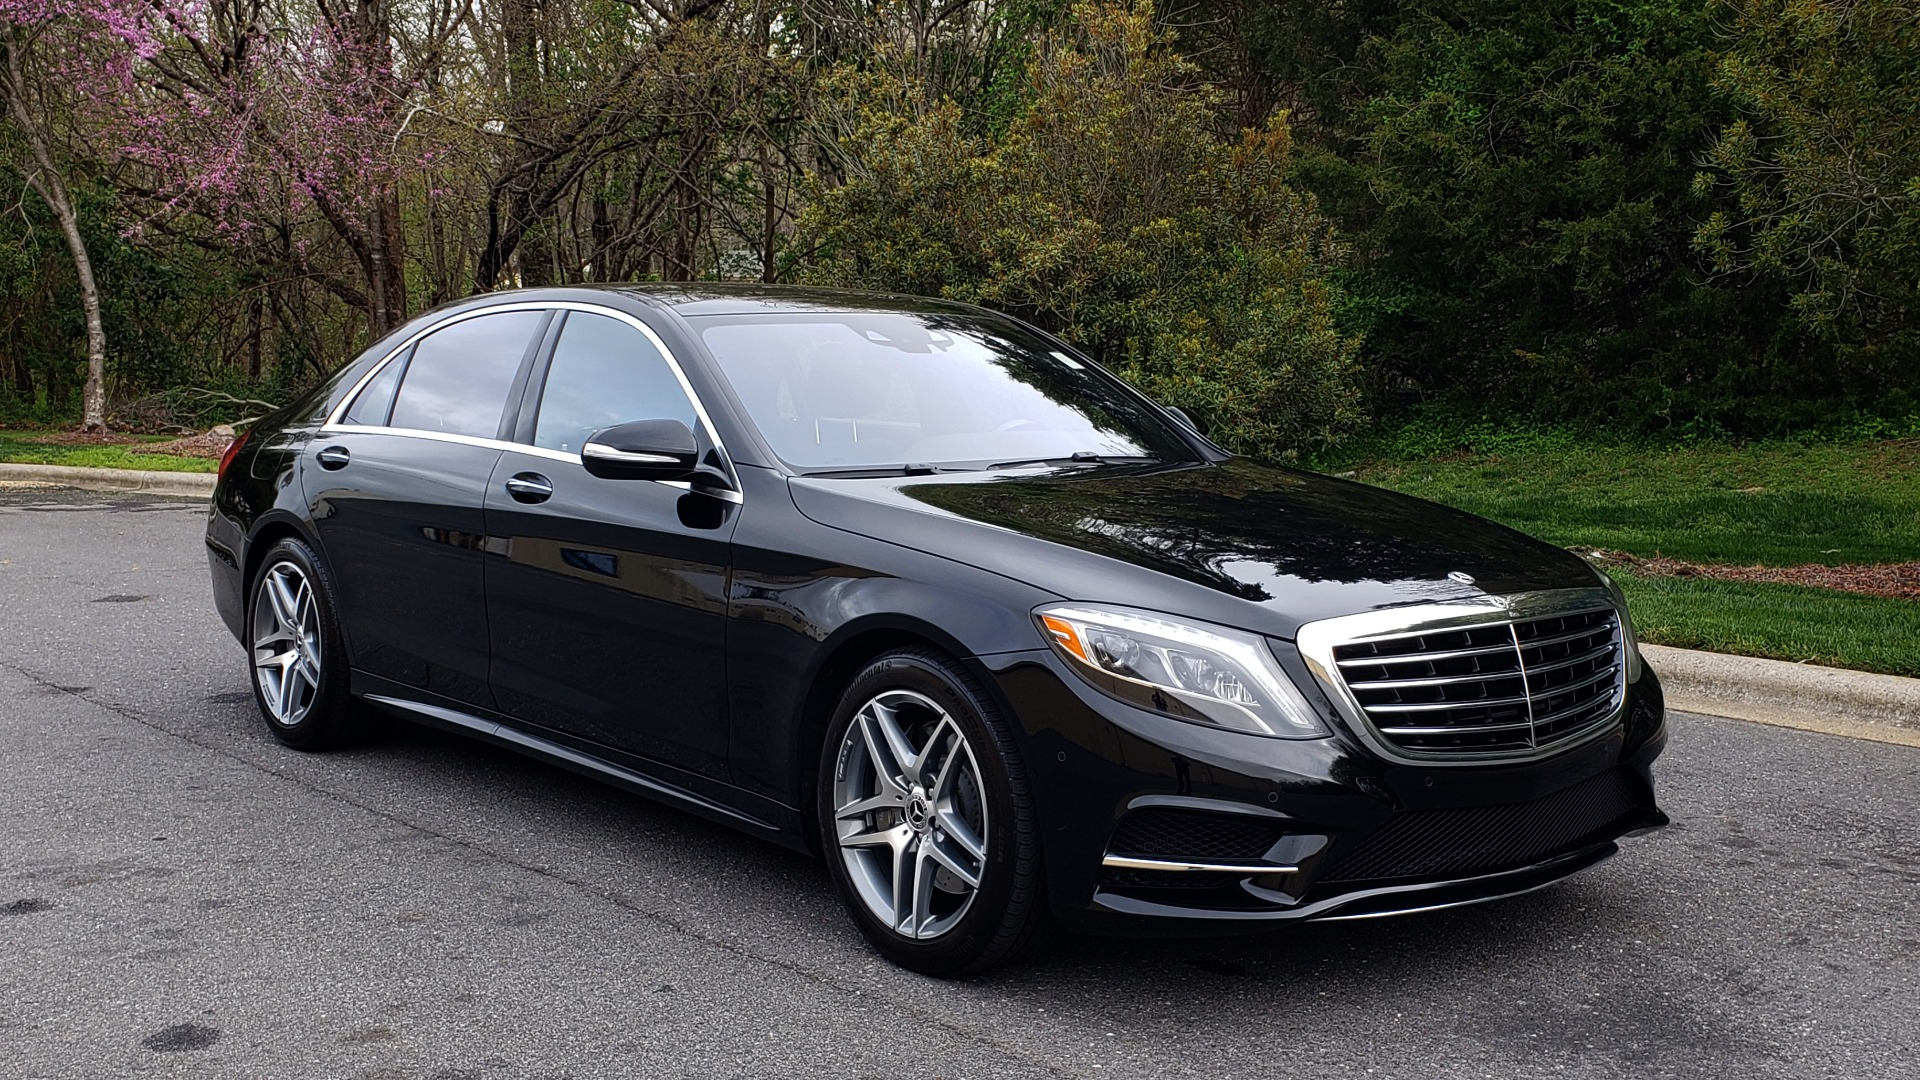 Used 2017 Mercedes-Benz S-CLASS S 550 4MATIC SPORT / PREM PKG / WARMTH & COMFORT / KEYLESS-GO for sale Sold at Formula Imports in Charlotte NC 28227 4